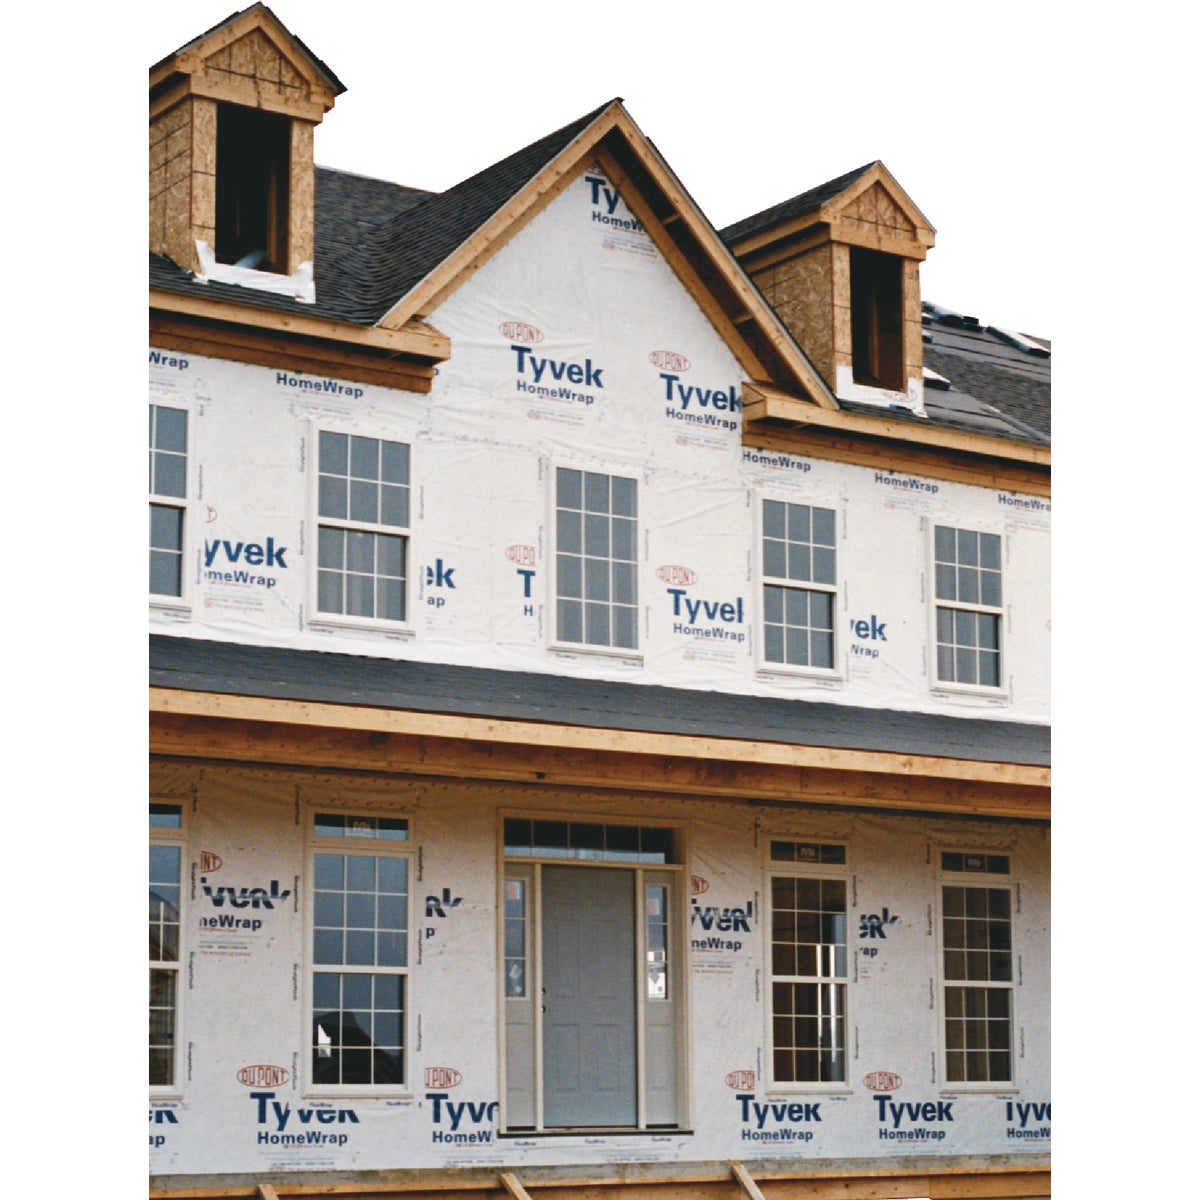 10X100 TYVEK HOUSE WRAP - D13406514 by Hallmark Bld Supply